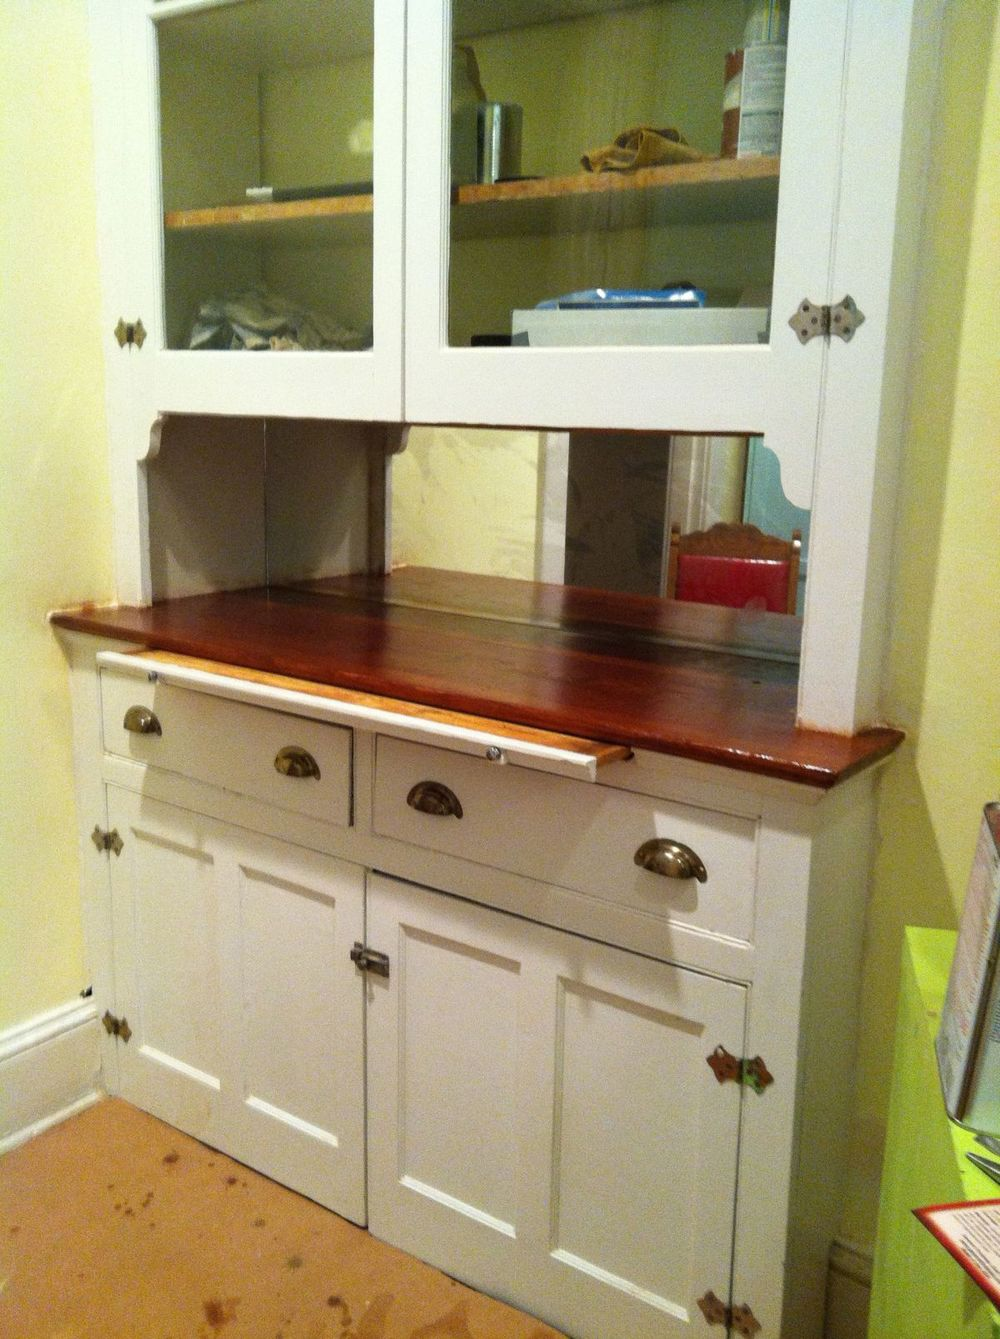 Kitchen Cabinet with pull-out work surface